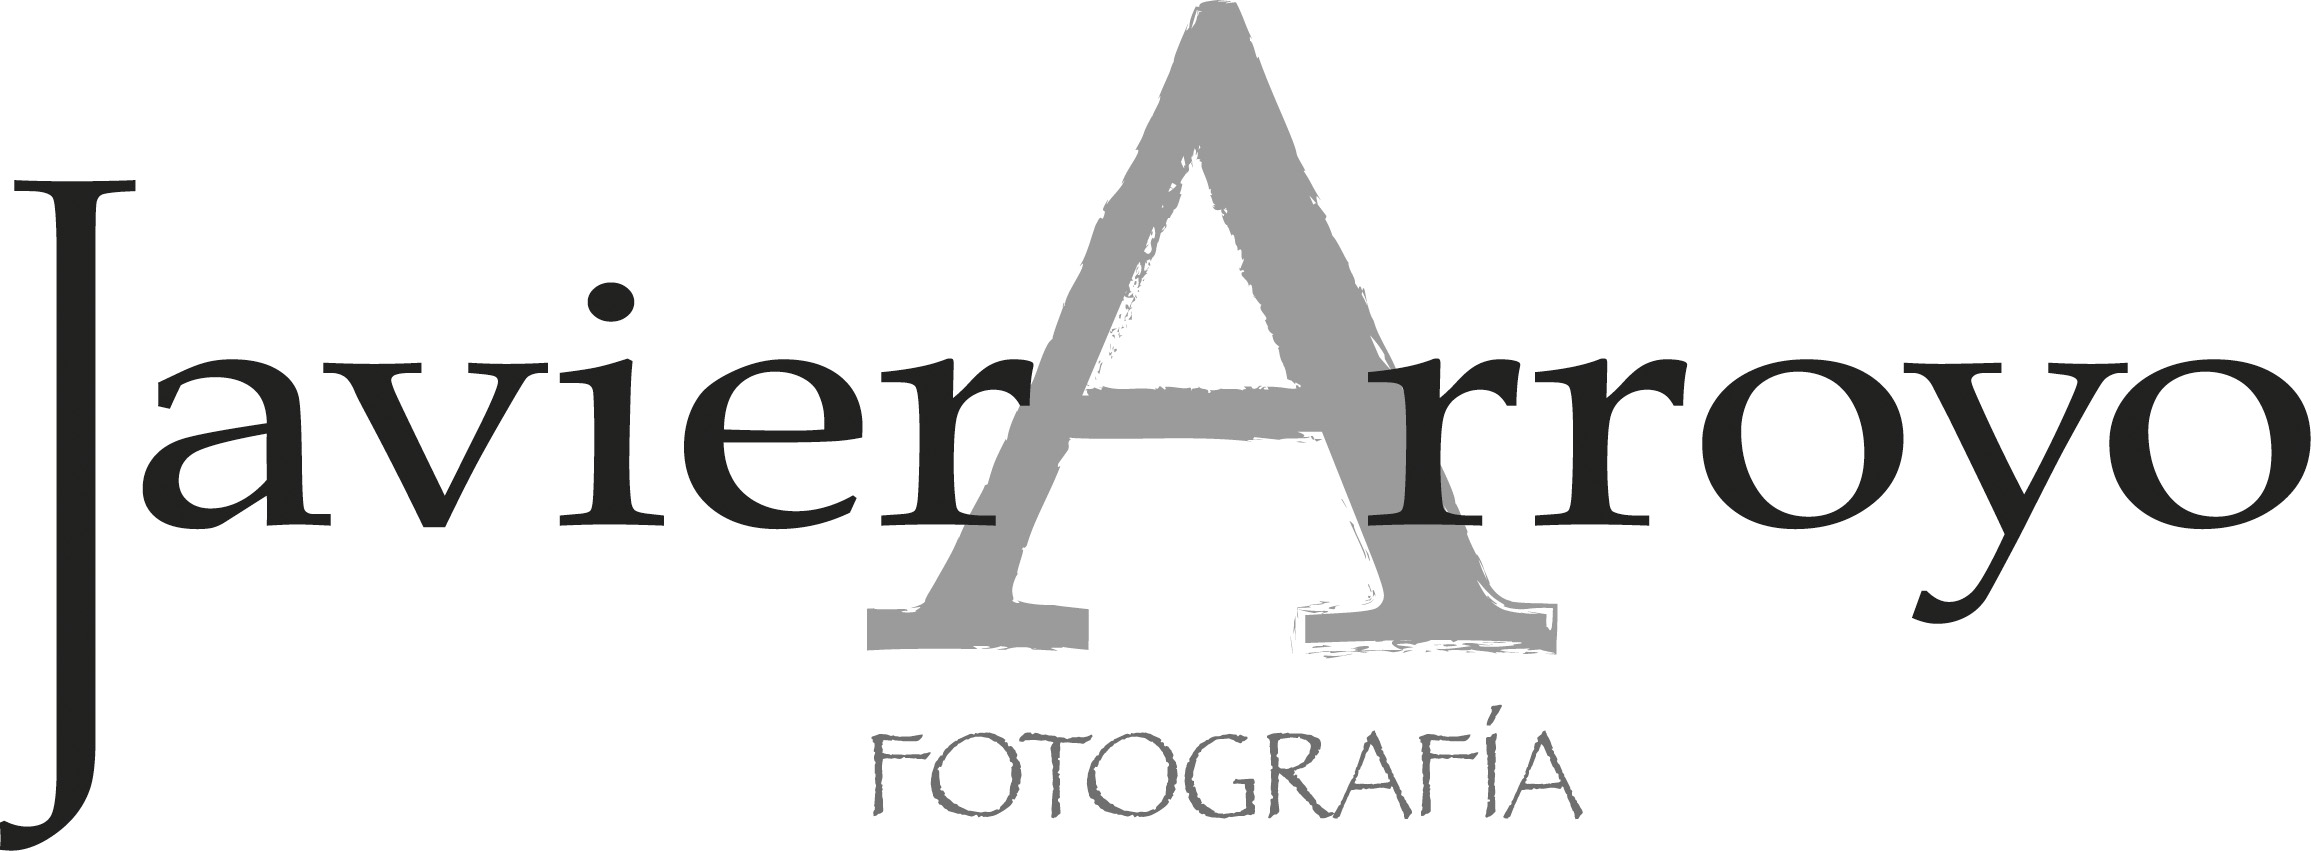 Javier Arroyo - Atelier photographer